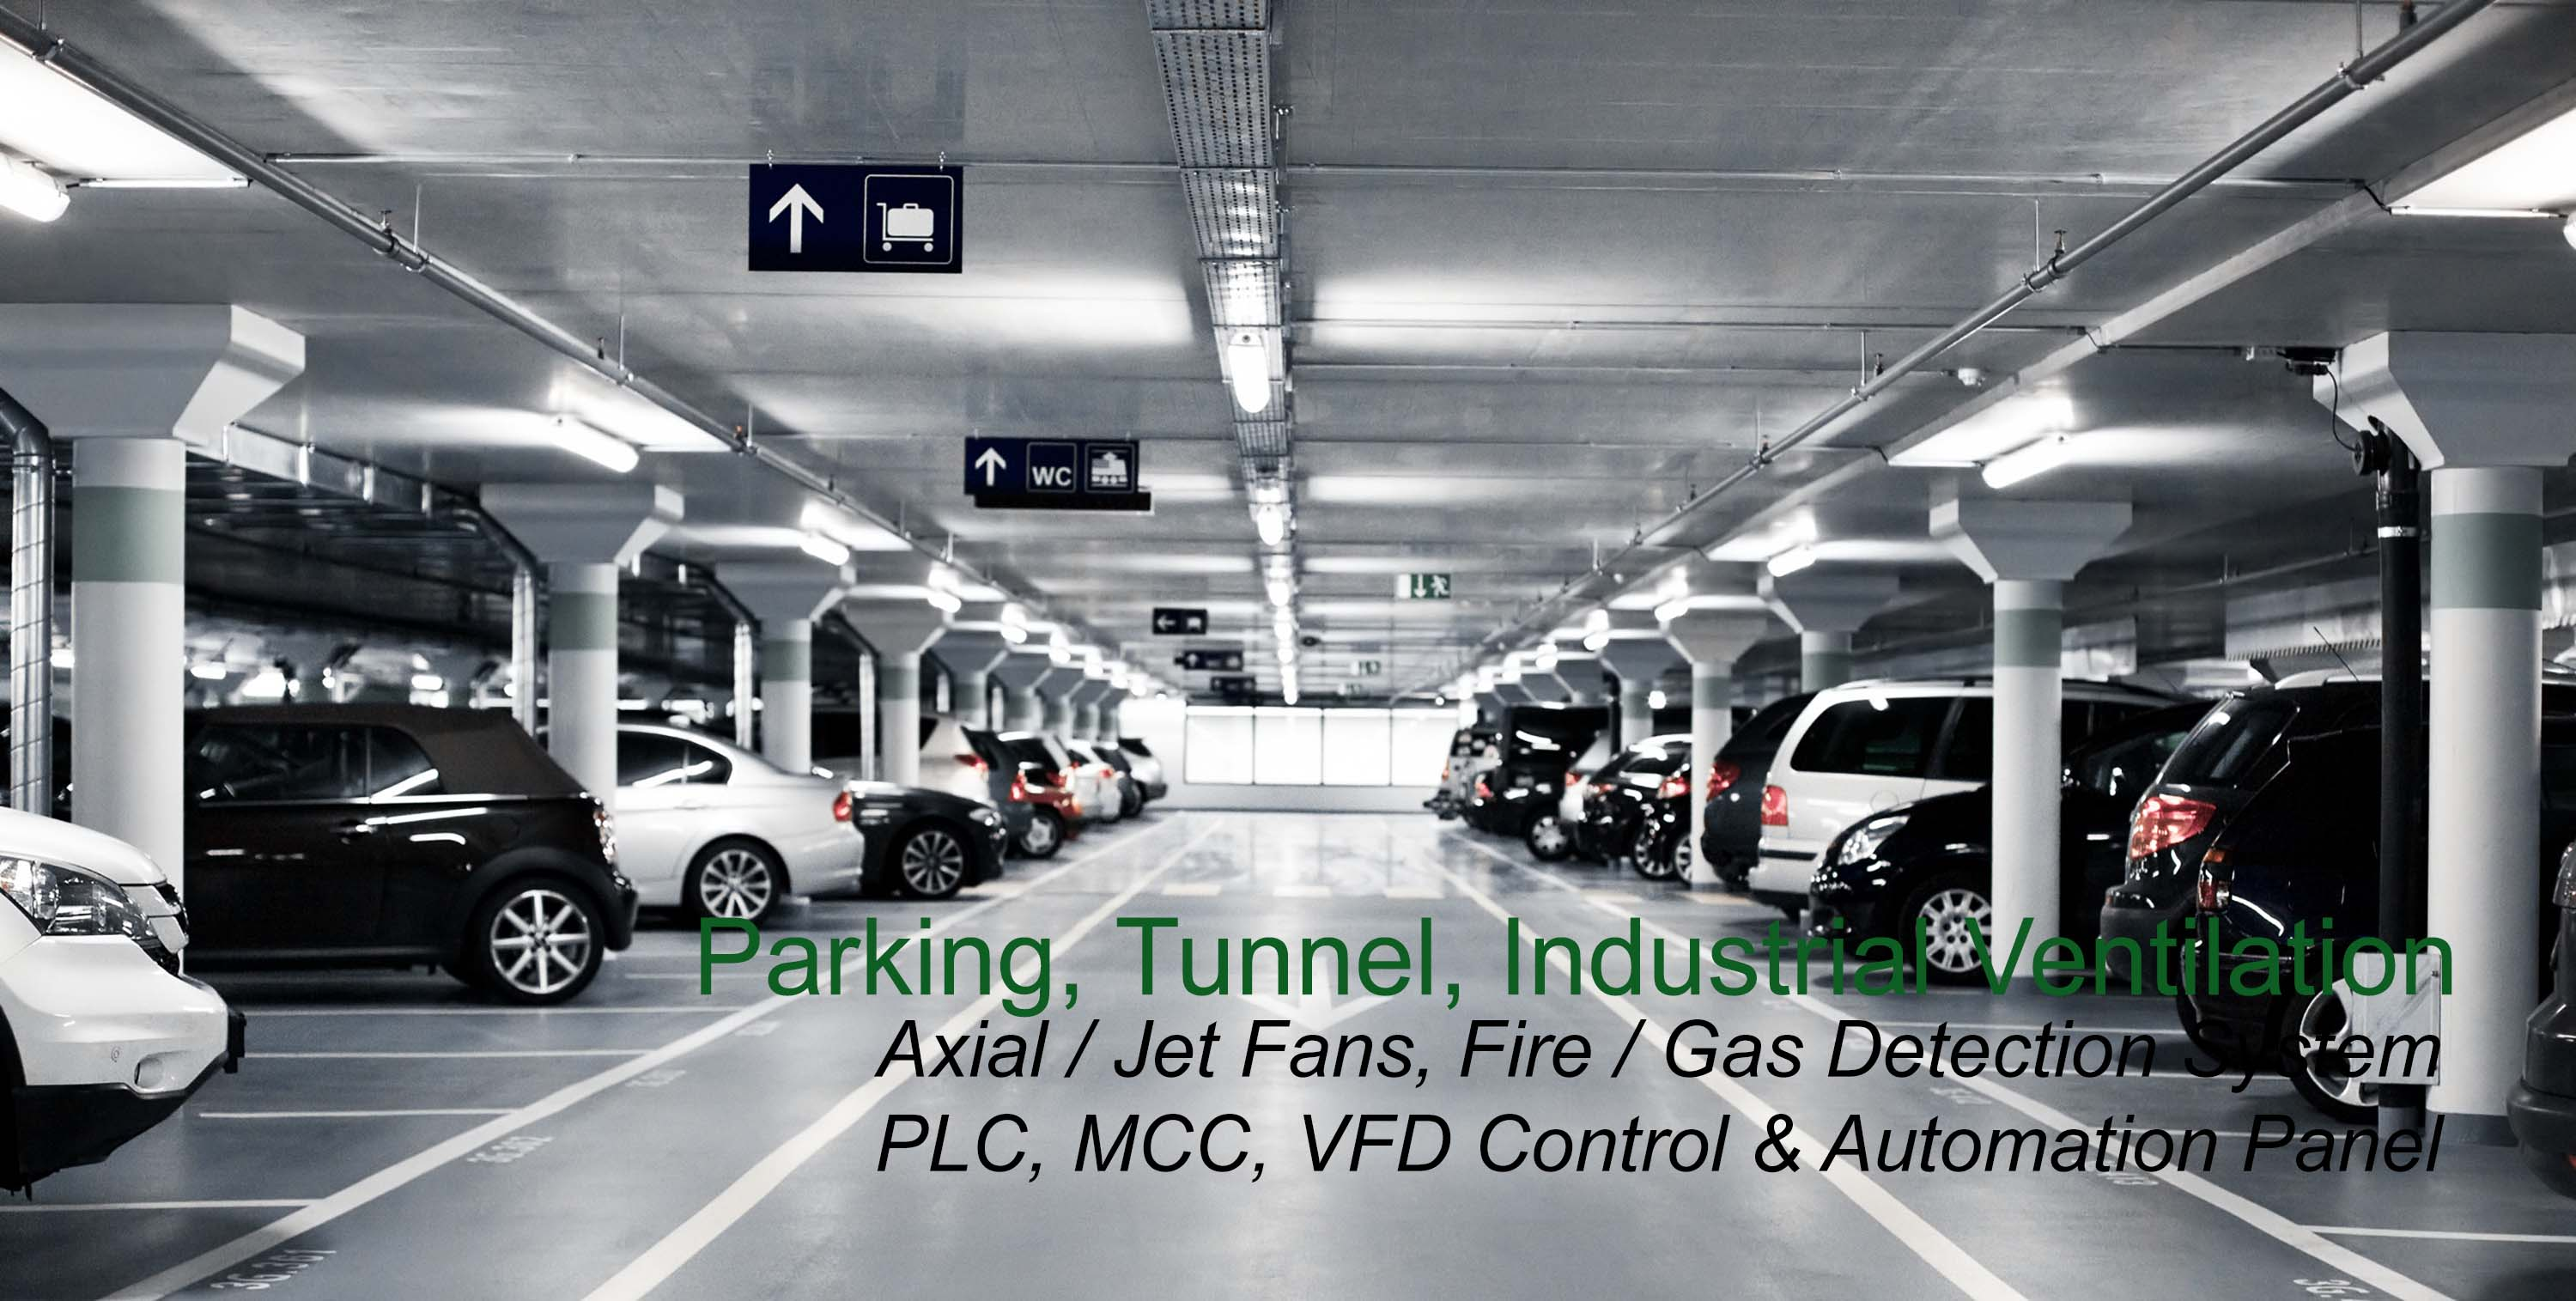 ek-engg-parking-tunnel-ventilation